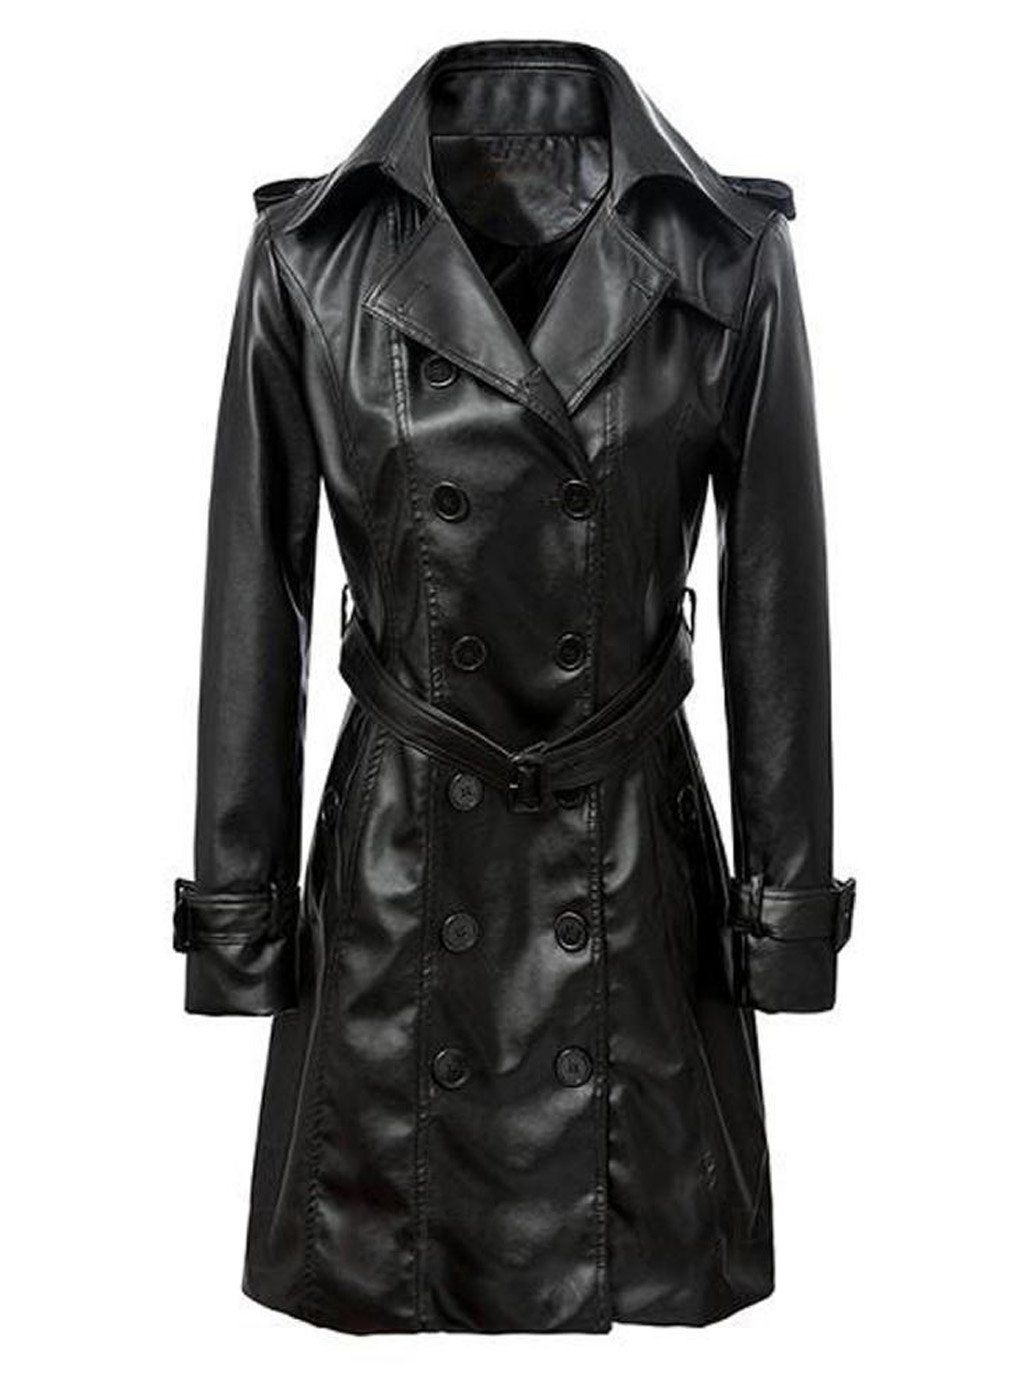 VearFit Smarterious Long coat Black PU leather jacket for